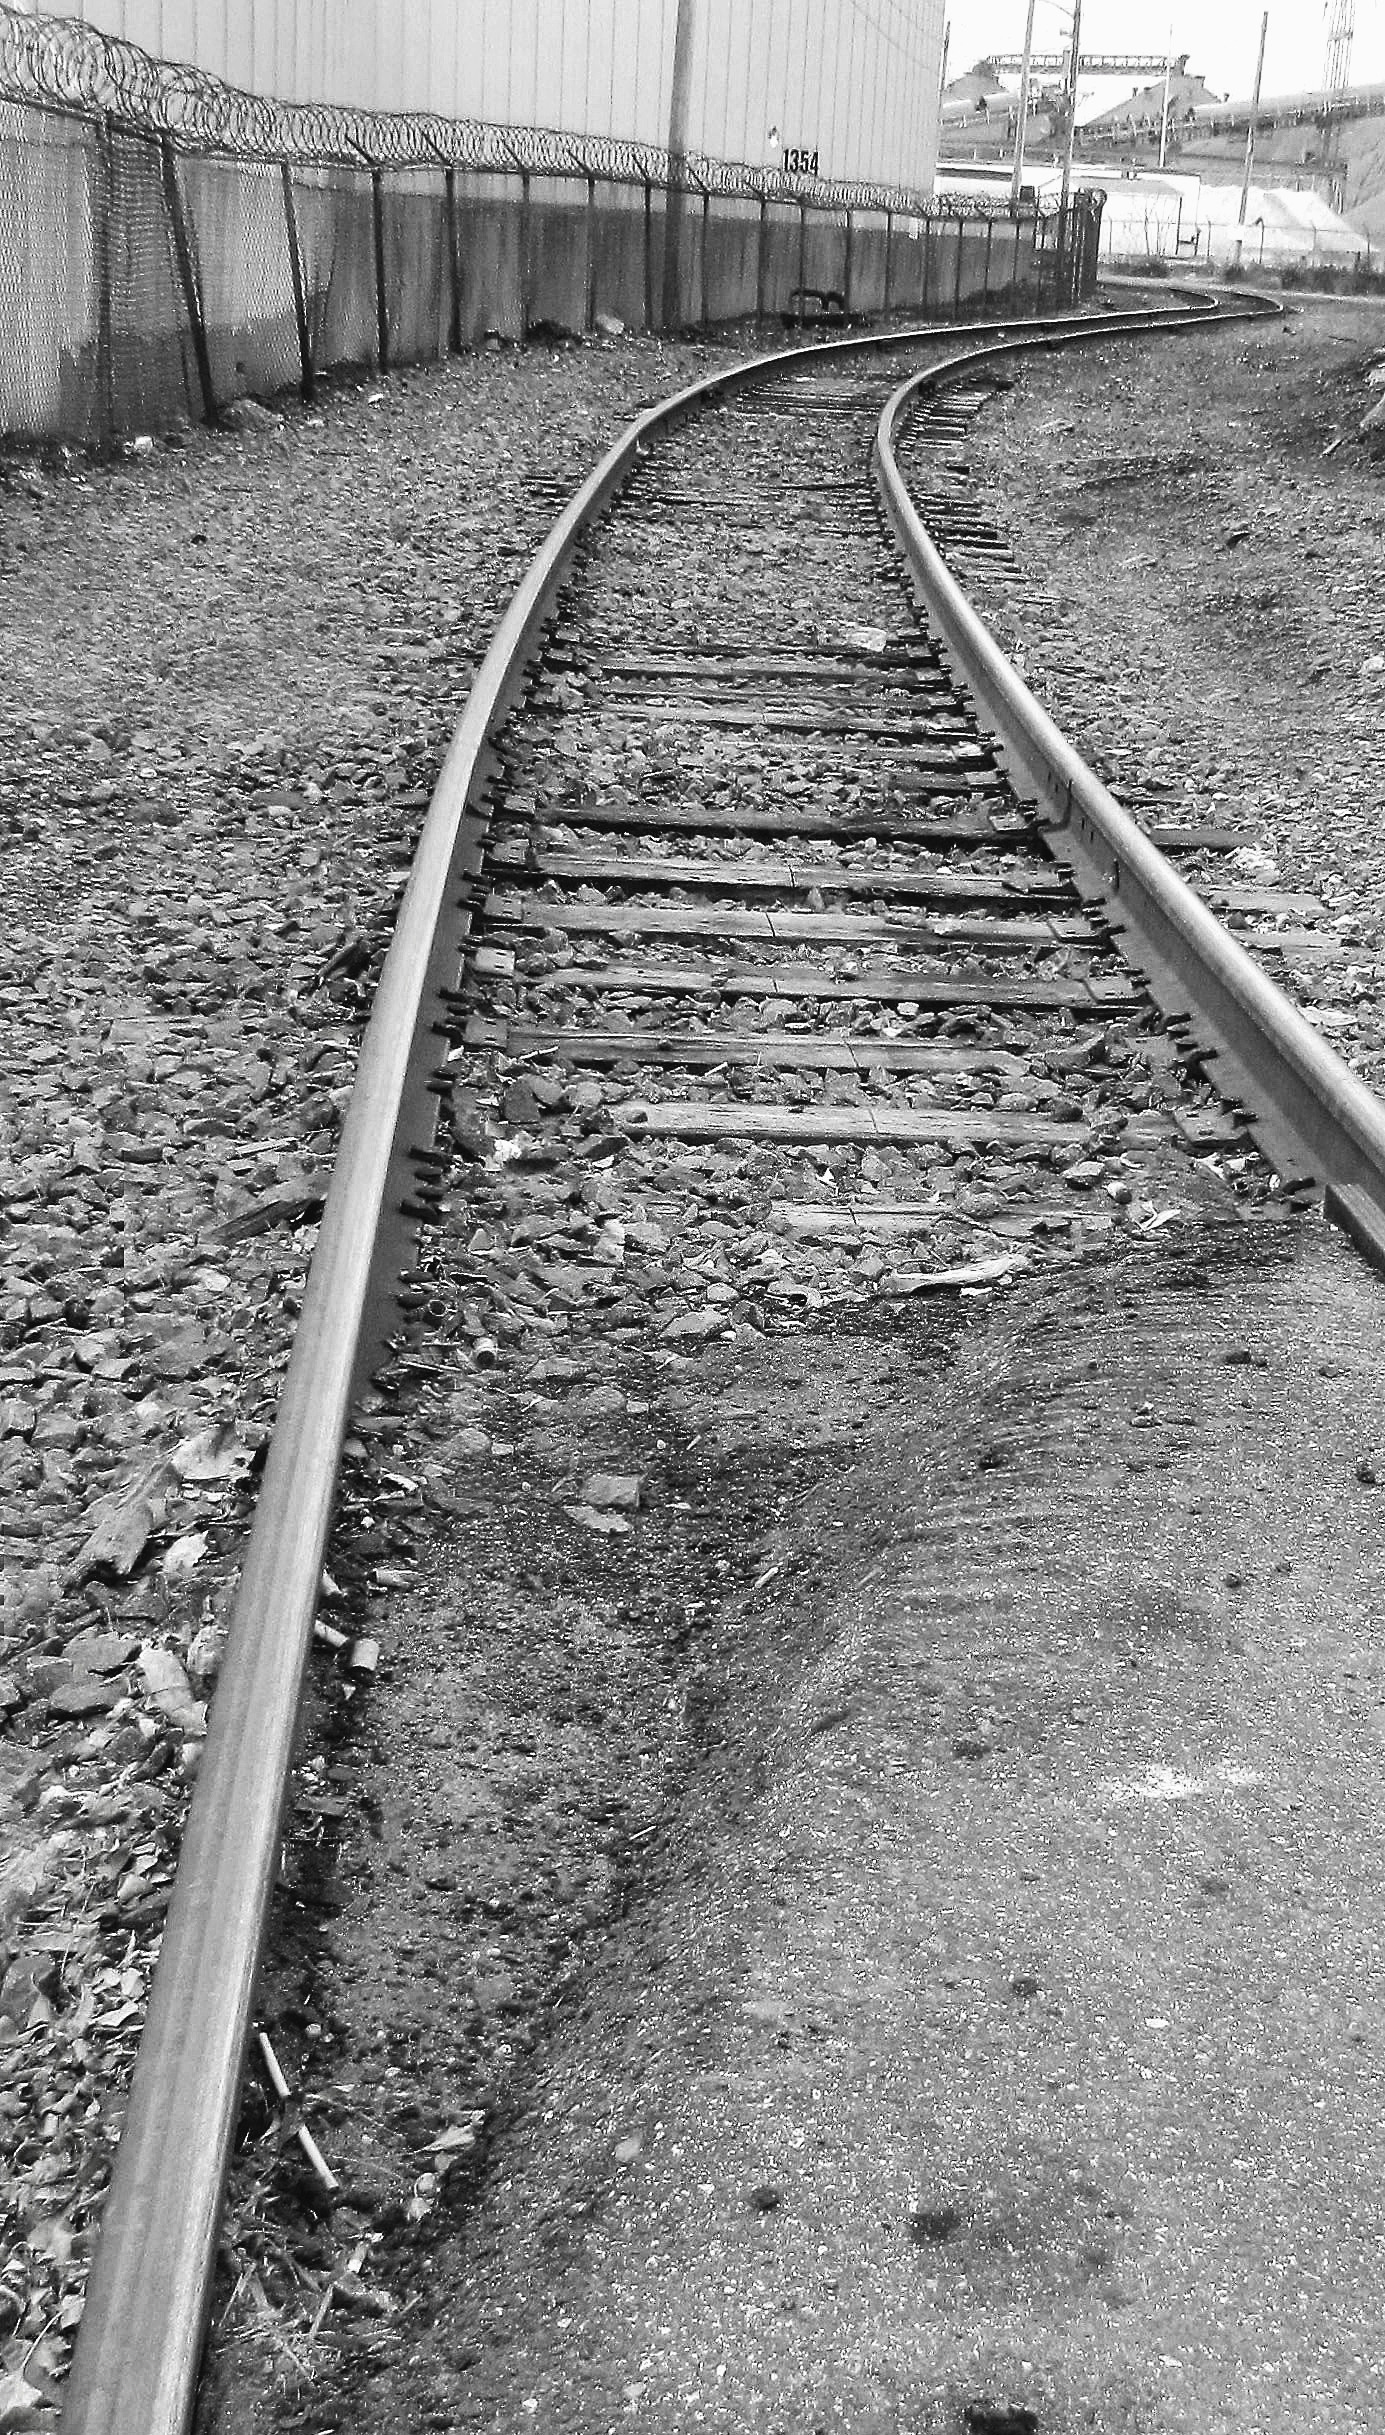 Black & White Of Industrial Rails